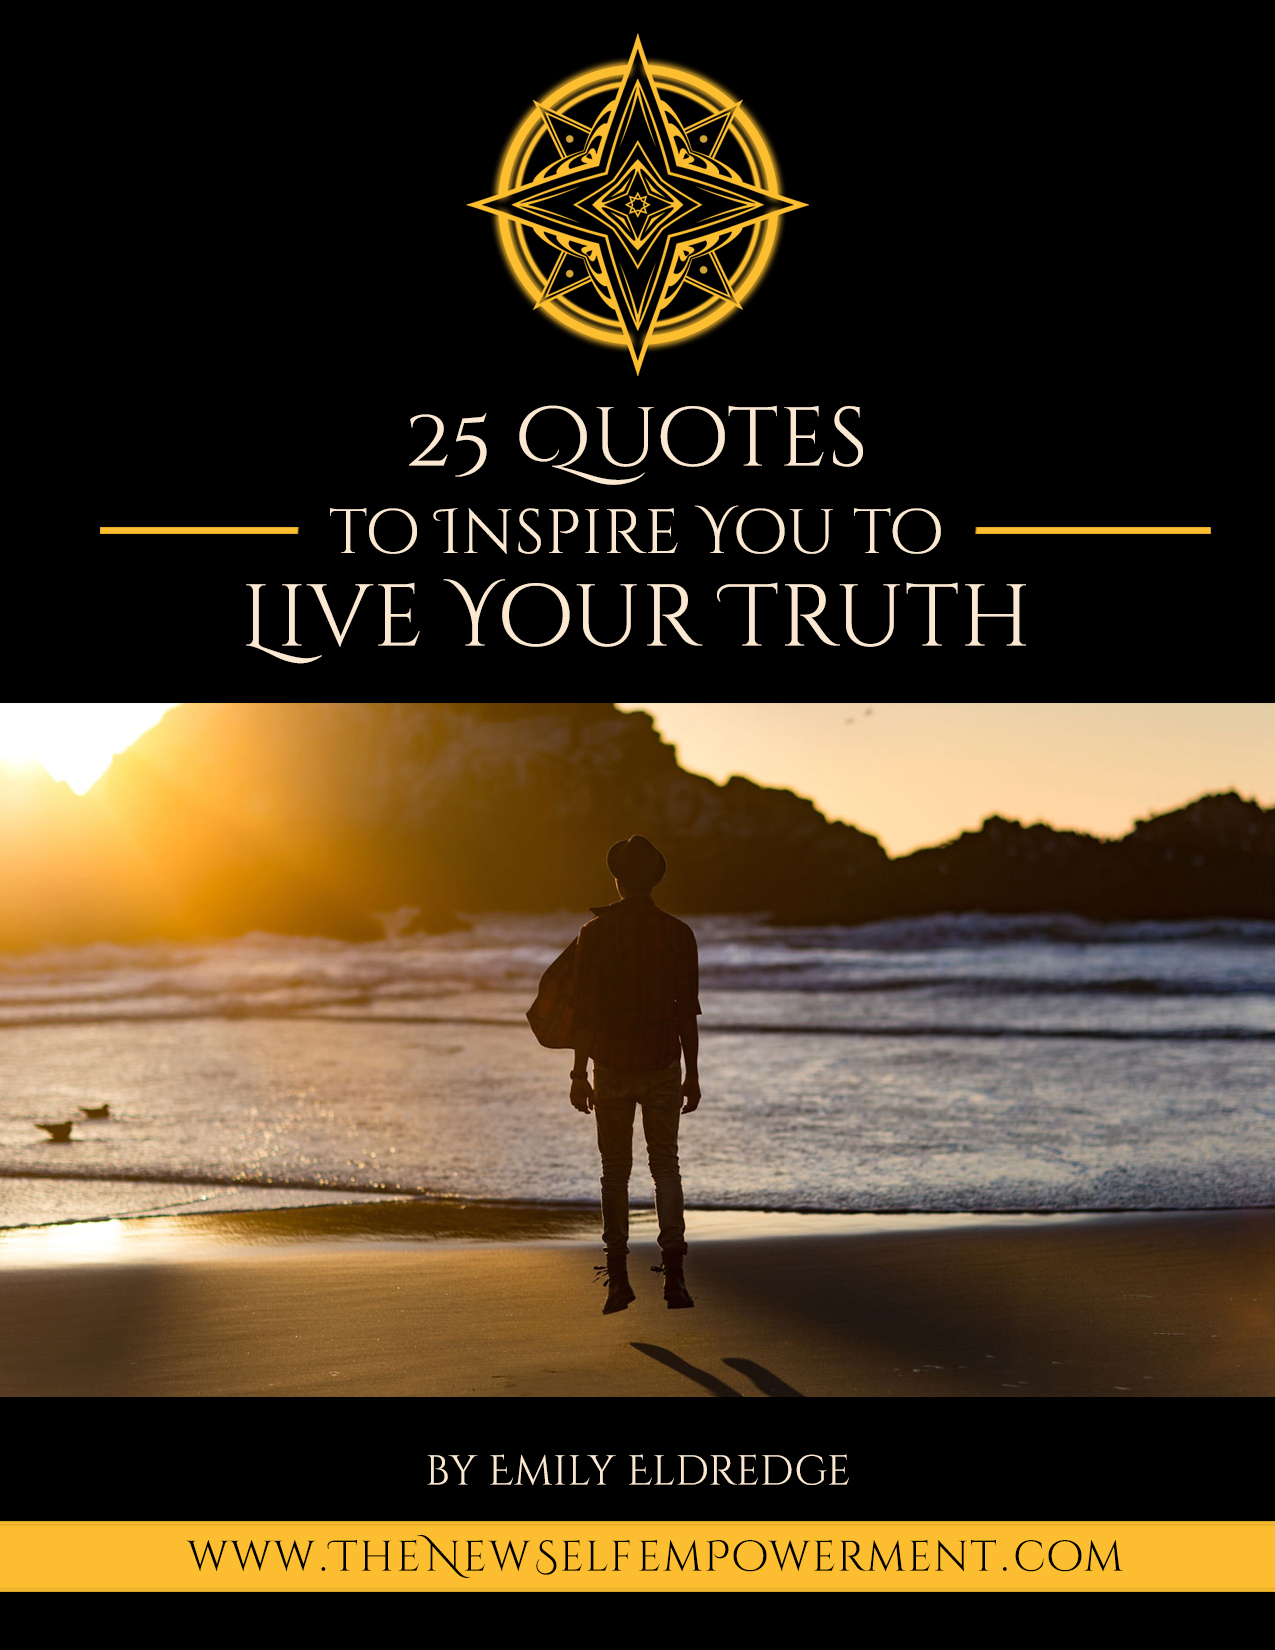 25 QUOTES BOOK - LIVE YOUR TRUTH Cover